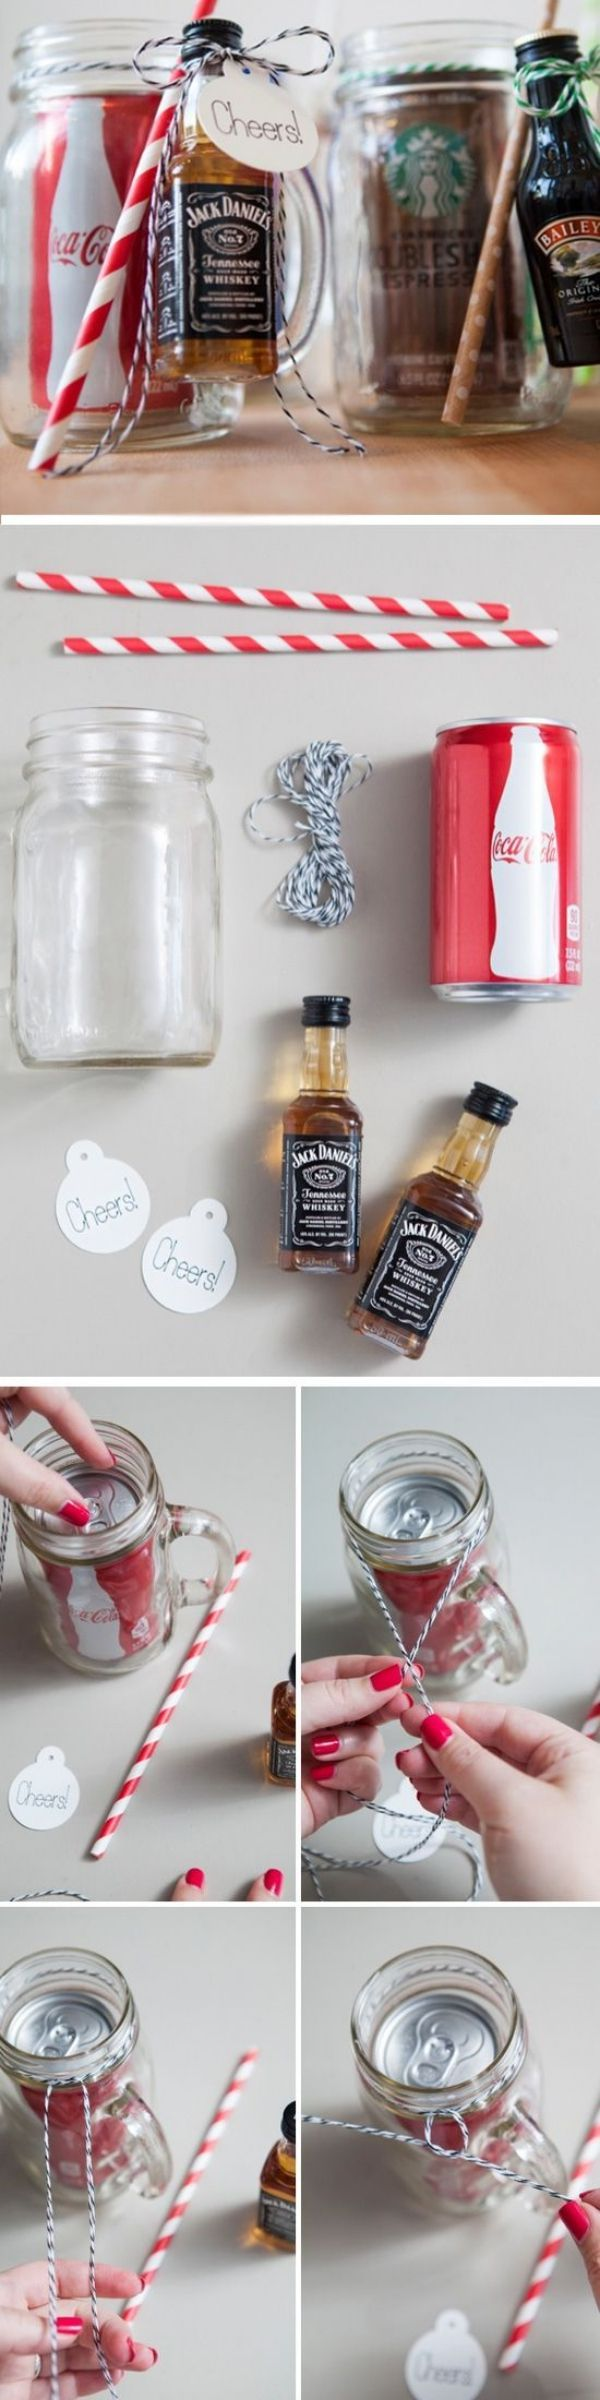 135 Homemade Christmas Gift Ideas to make him say